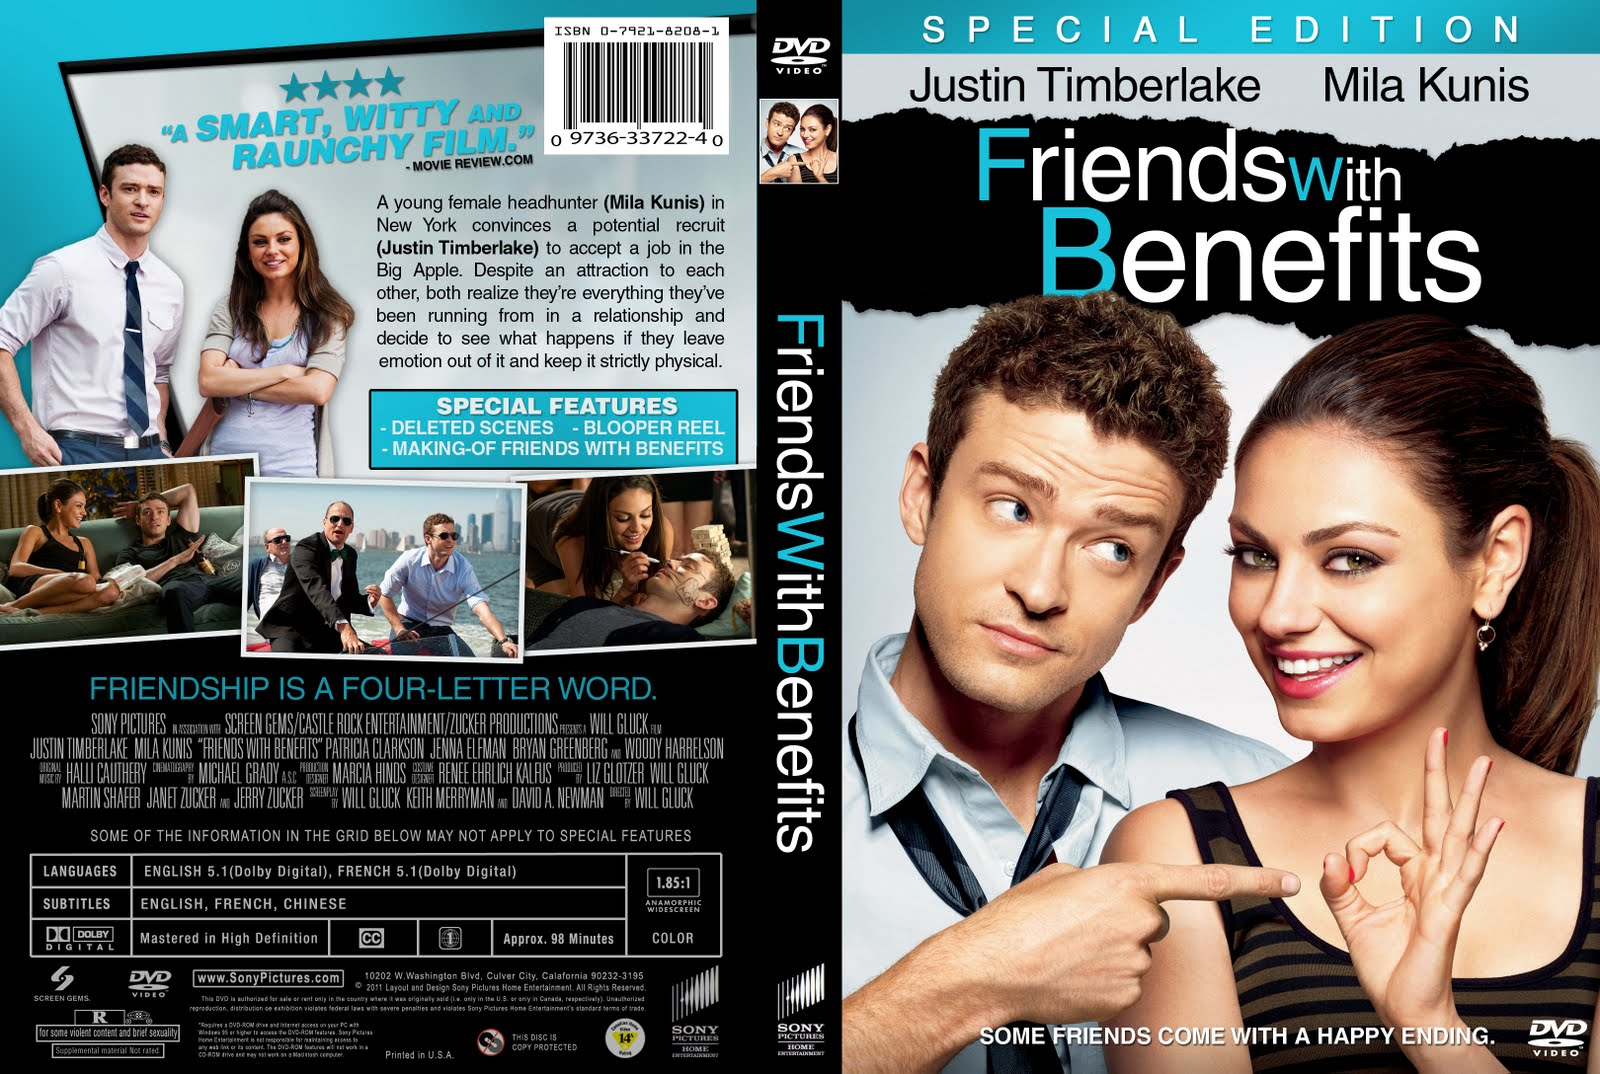 Friends with benefits agreement